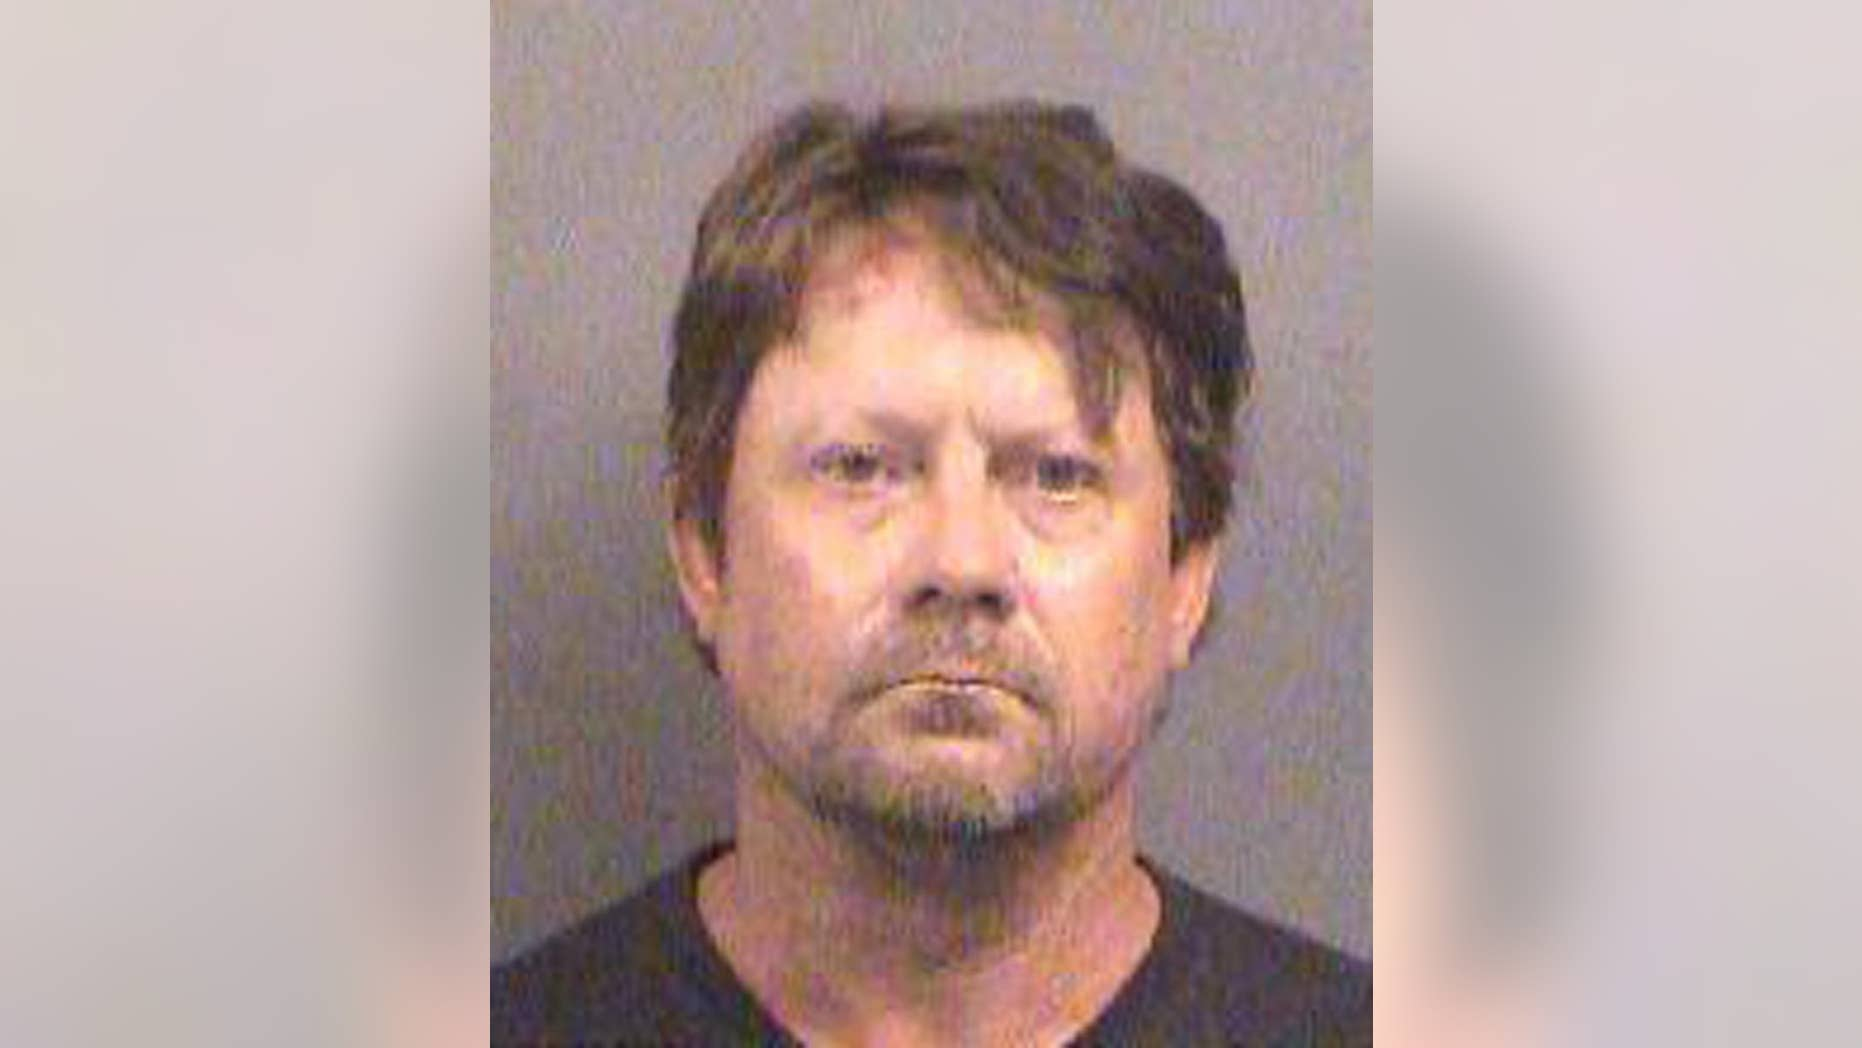 This Friday, Oct. 14, 2016 booking photo provided by the Sedgwick County Sheriff's Office in Wichita, Kan., shows Patrick Eugene Stein. Stein is one of three members of a Kansas militia group who were charged Friday Oct. 14, 2016, with plotting to bomb an apartment building filled with Somali immigrants in Garden City, Kan. Acting U.S. Attorney Tom Beall said Curtis Allen, Stein and Gavin Wright are members of a group calling itself the Kansas Security Force. Beall says the arrests were the culmination of an eight-month investigation. (Sedgwick County Sheriff's Office via AP)